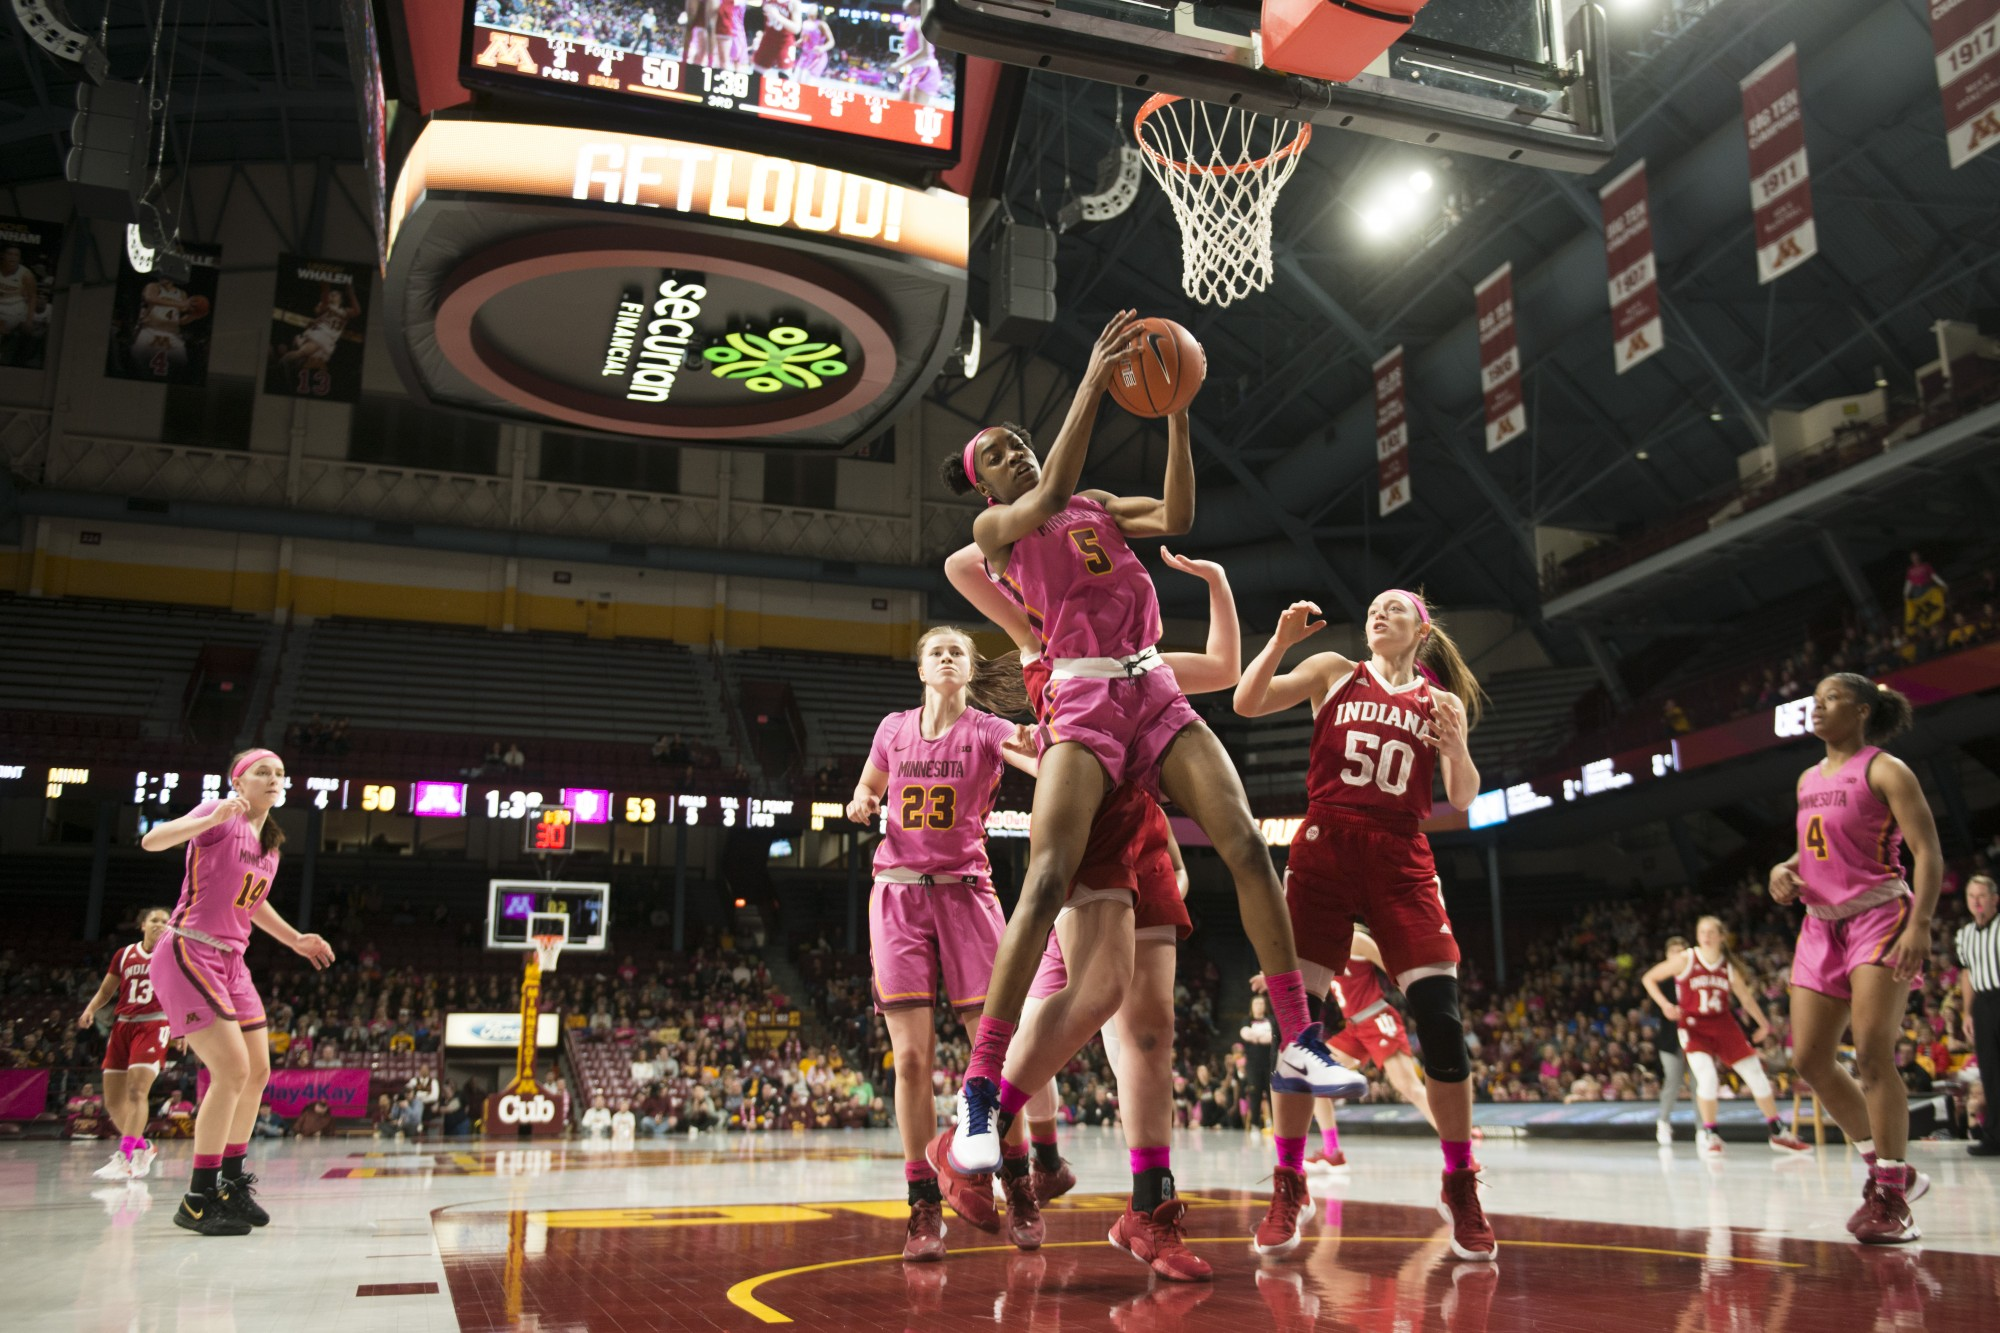 Forward Taiye Bello secures a rebound near the end of the fourth quarter during the Gophers' 75-69 loss to Indiana at Williams Arena on Saturday, Feb. 22.